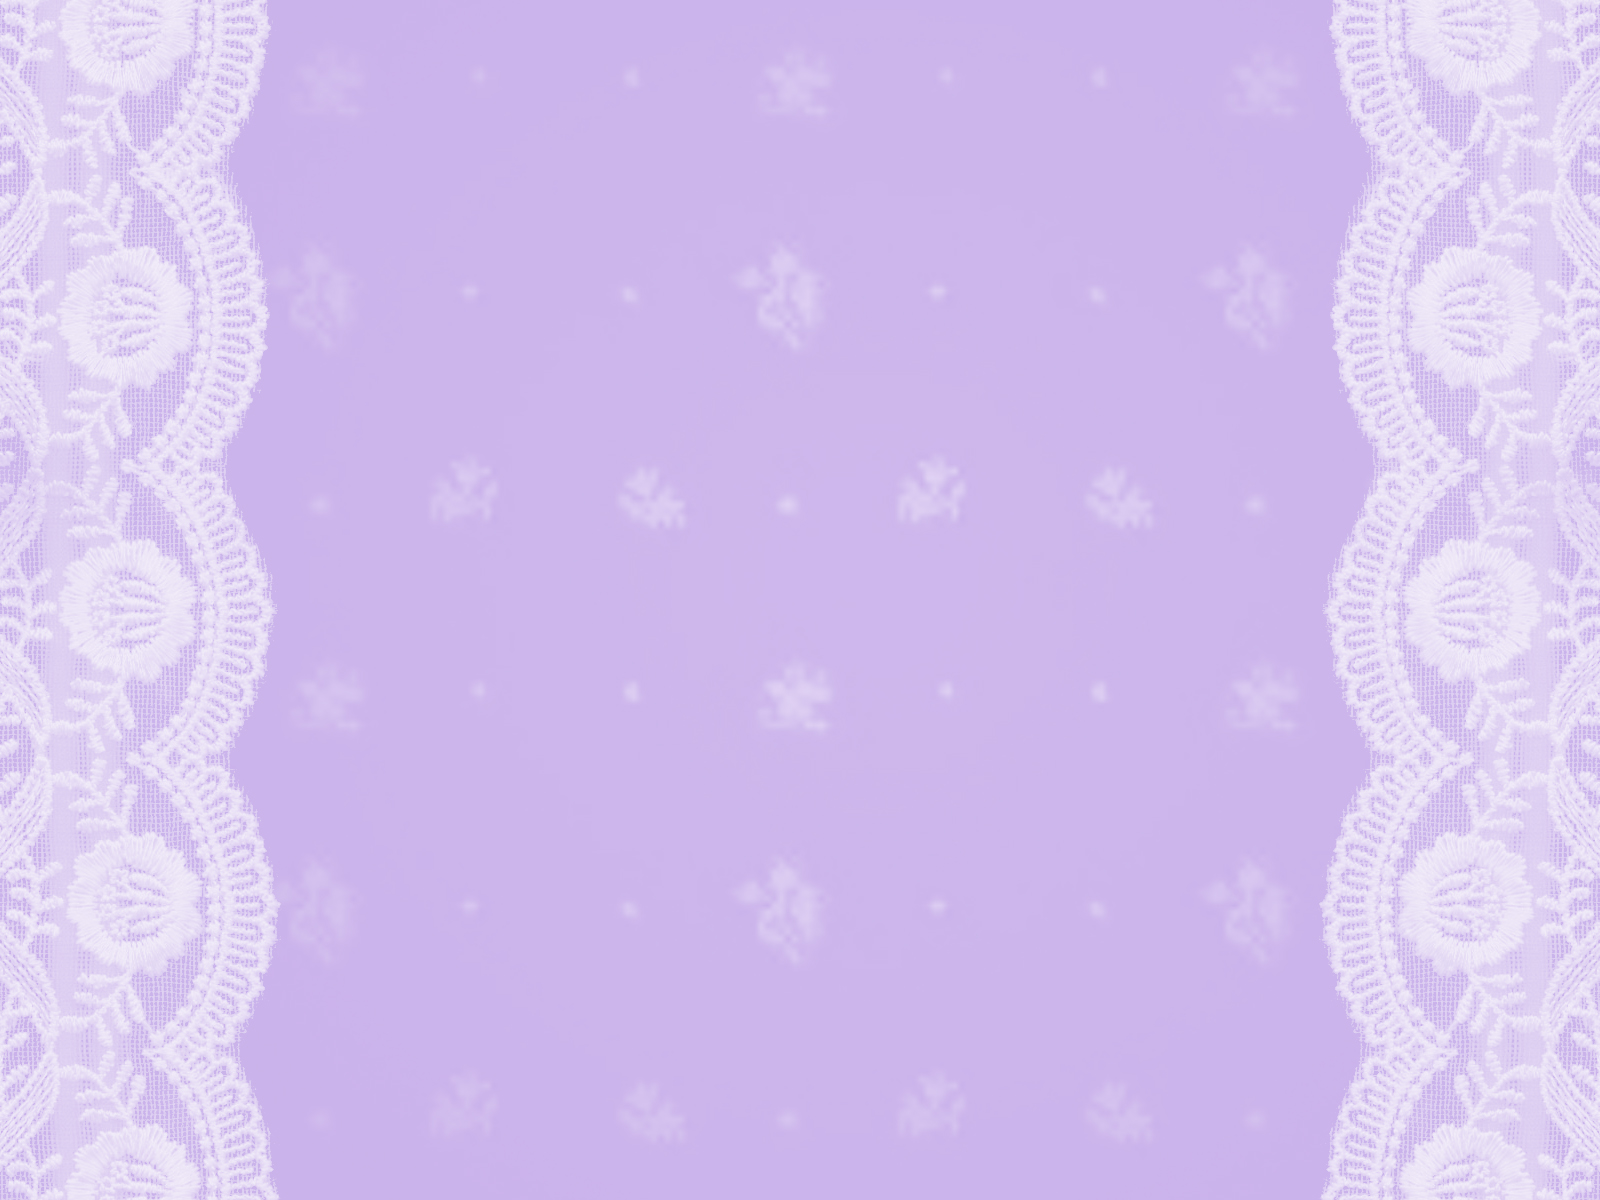 lavender vintage background - photo #37